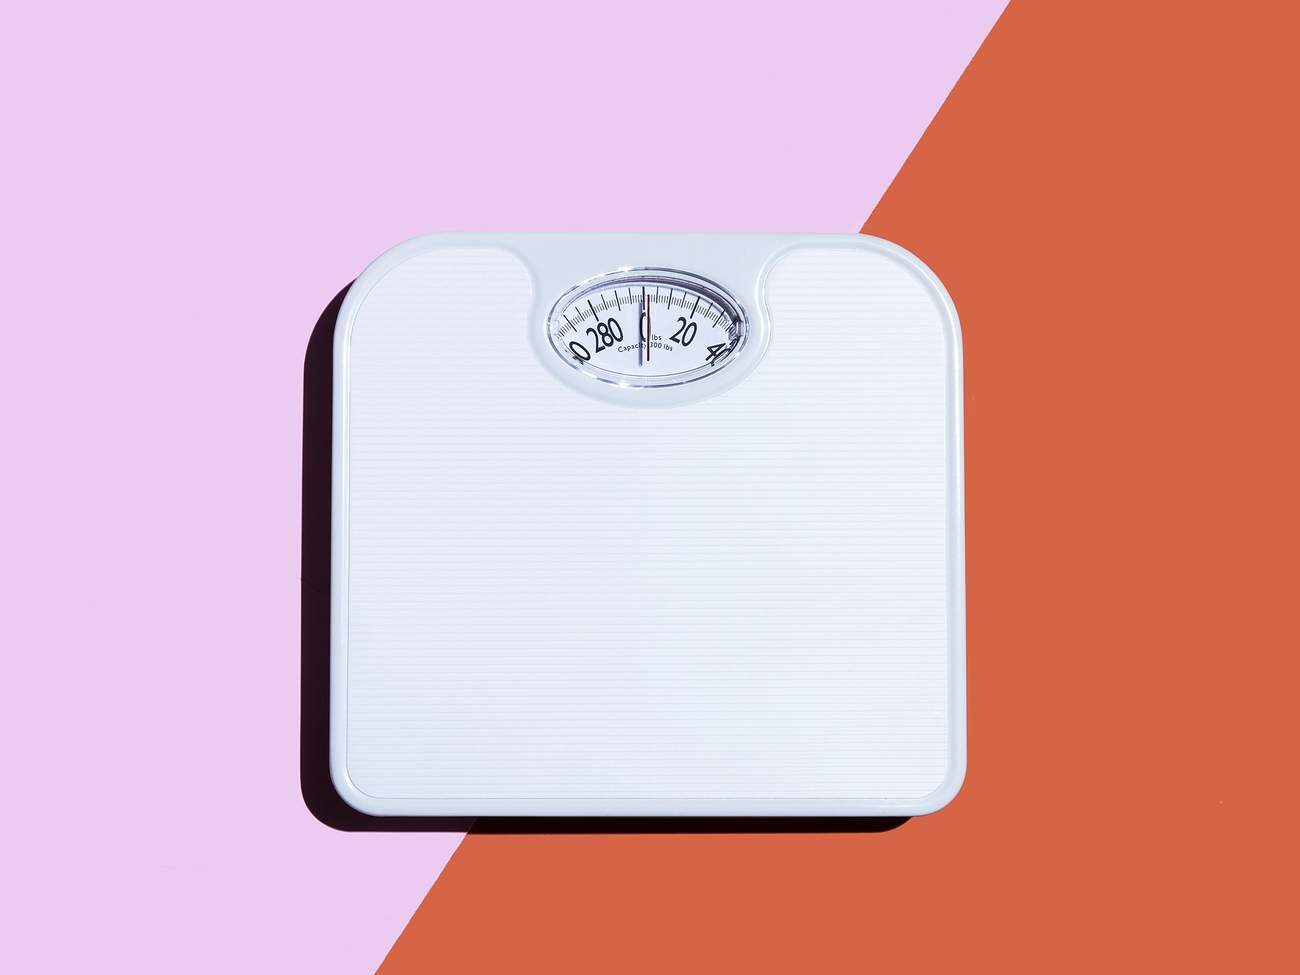 scale-weight-body-image-diet-health-fitness-advice-betterment-motto-stock